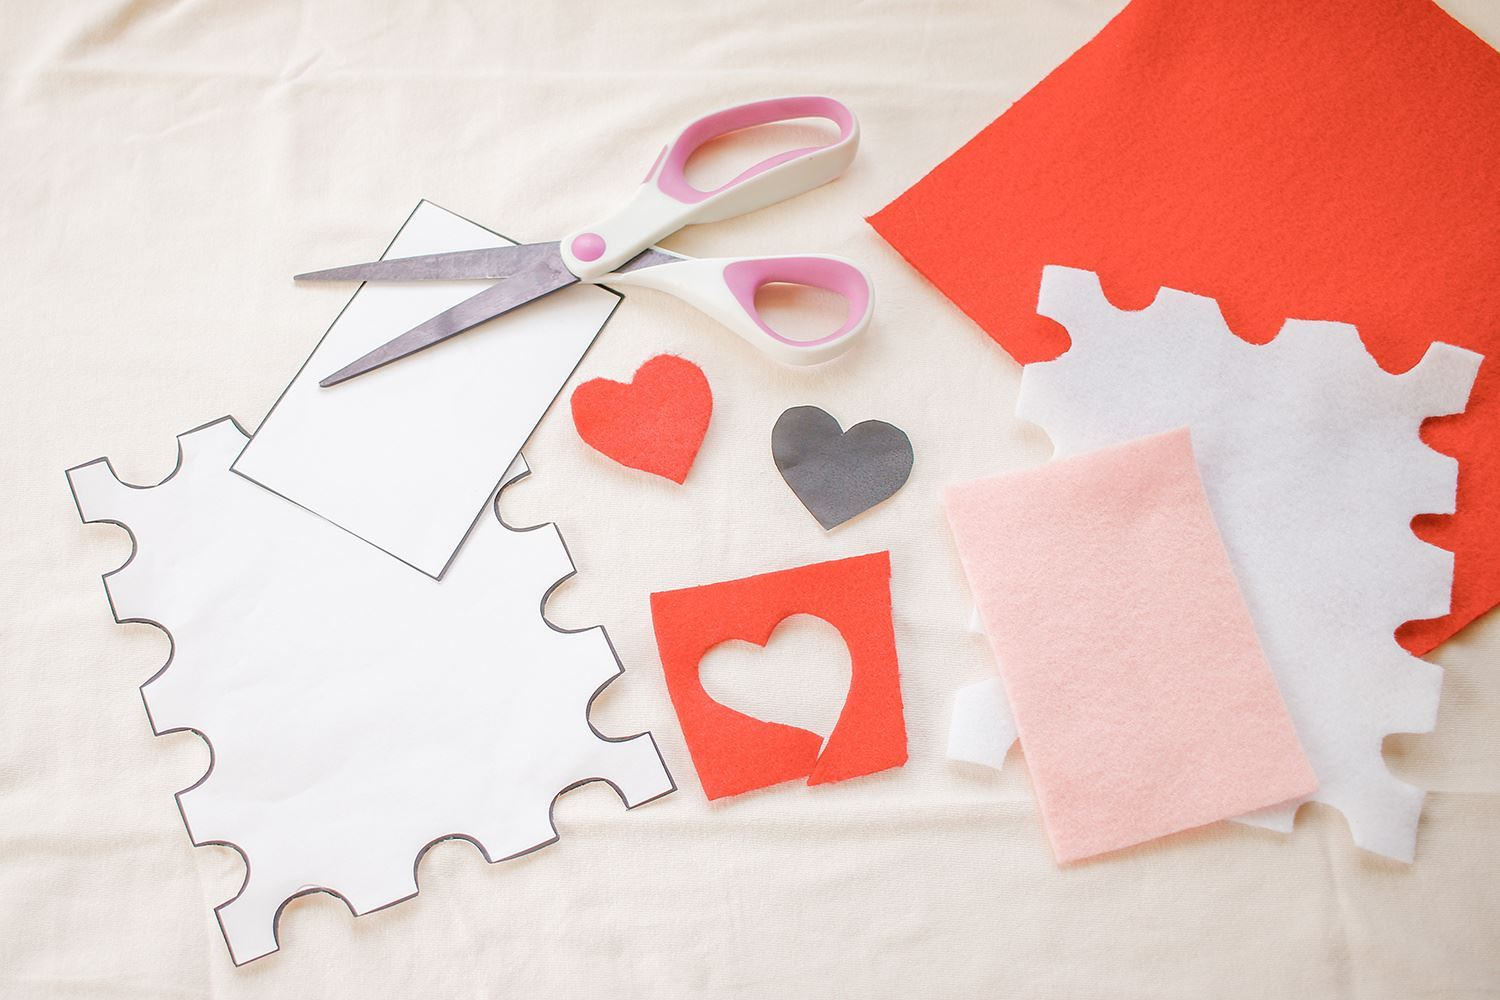 Trace and cut out heart and rectangle